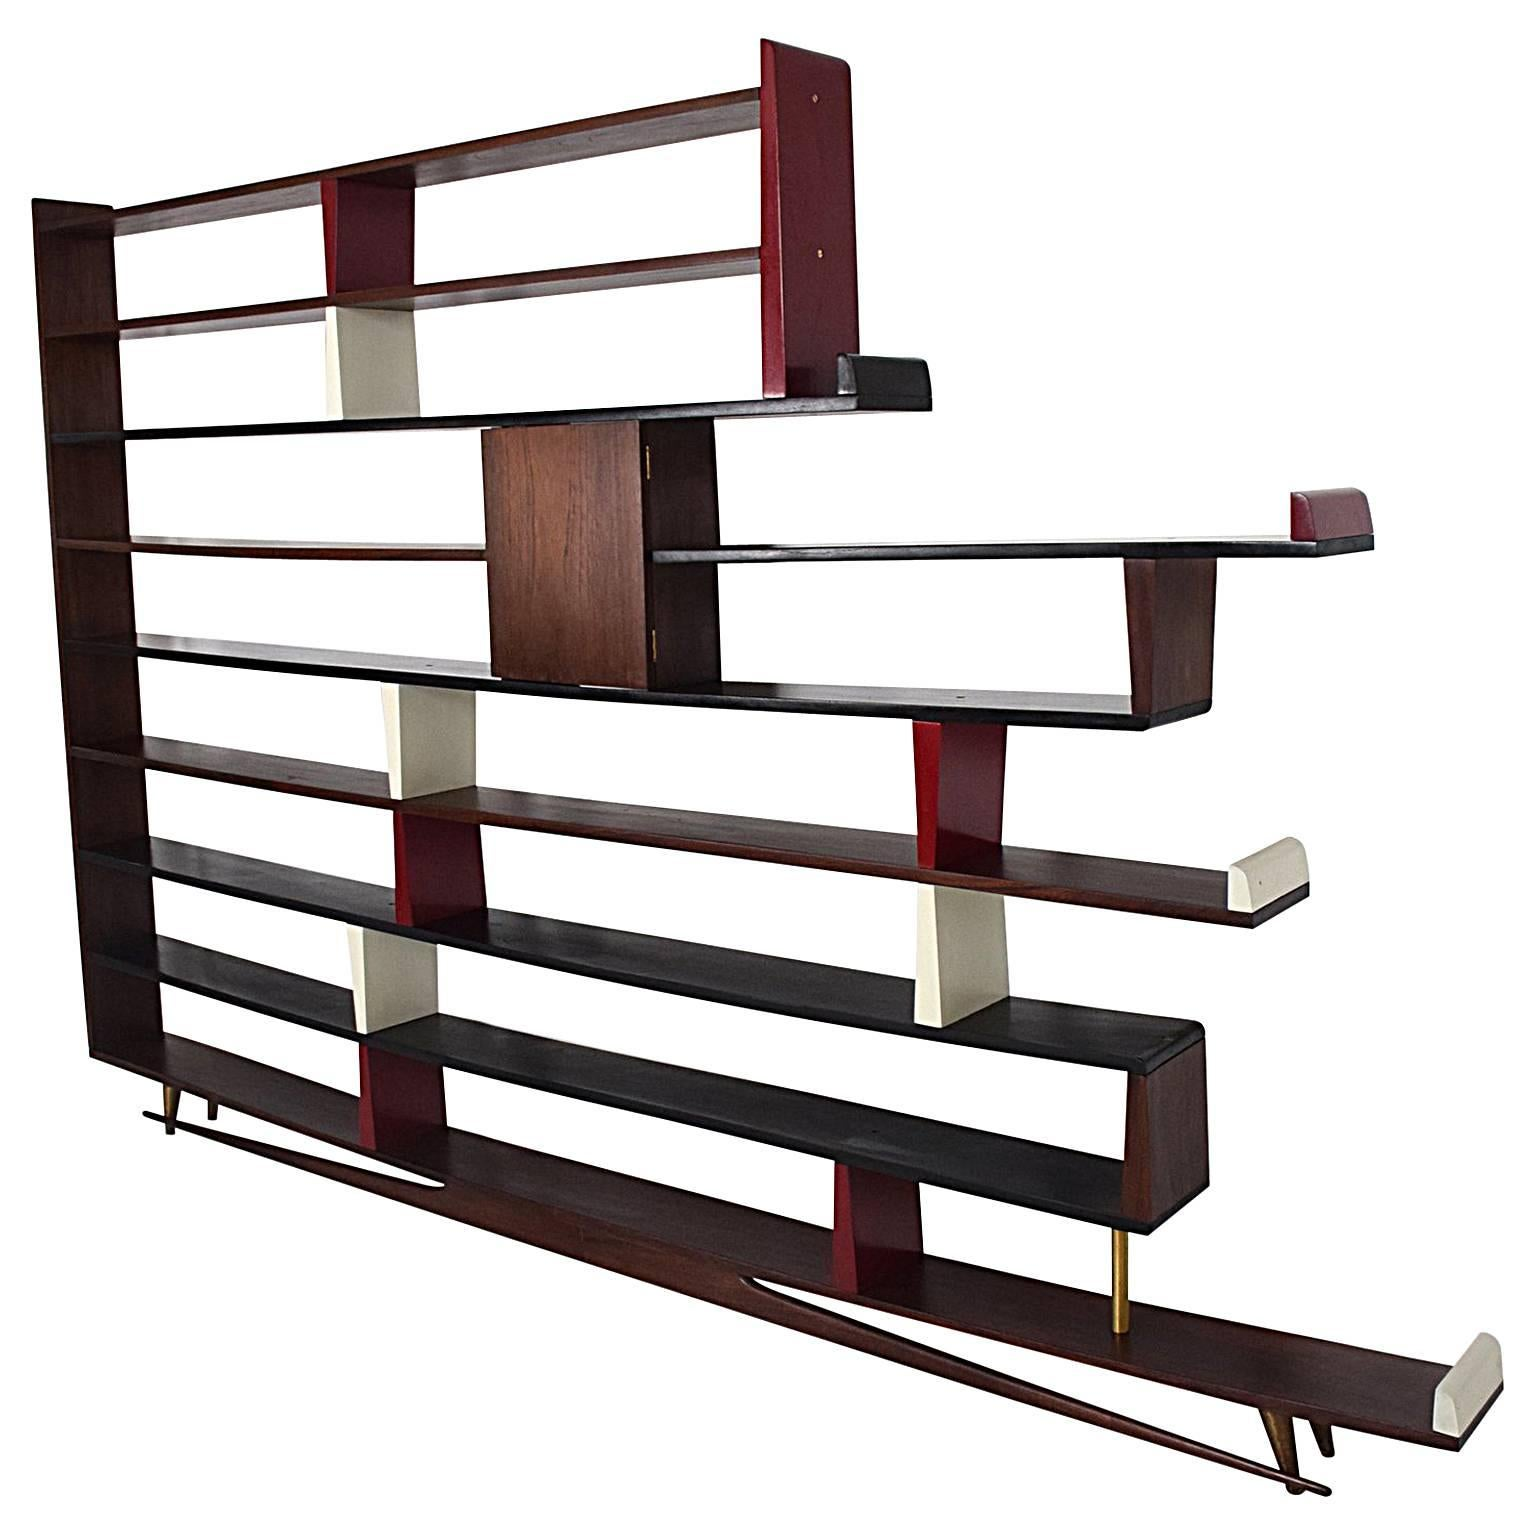 Mid Century Modern Mexican Modernist Bookcase Shelving Room Divider For Sale